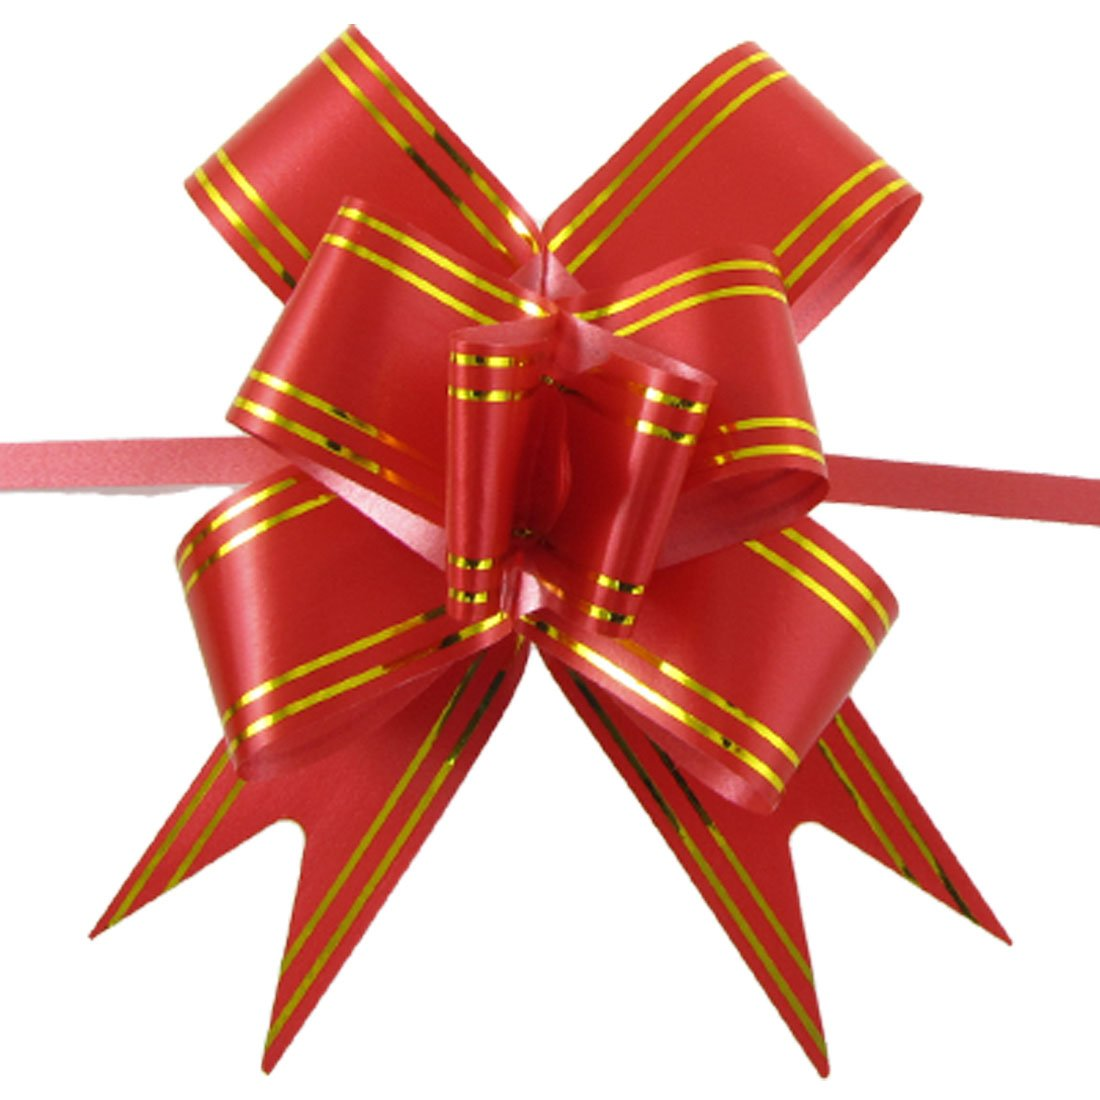 Gift packing red gold tone poly pull bow ribbon diy decor 10 pcs in gift packing red gold tone poly pull bow ribbon diy decor 10 pcs in party diy decorations from home garden on aliexpress alibaba group negle Gallery